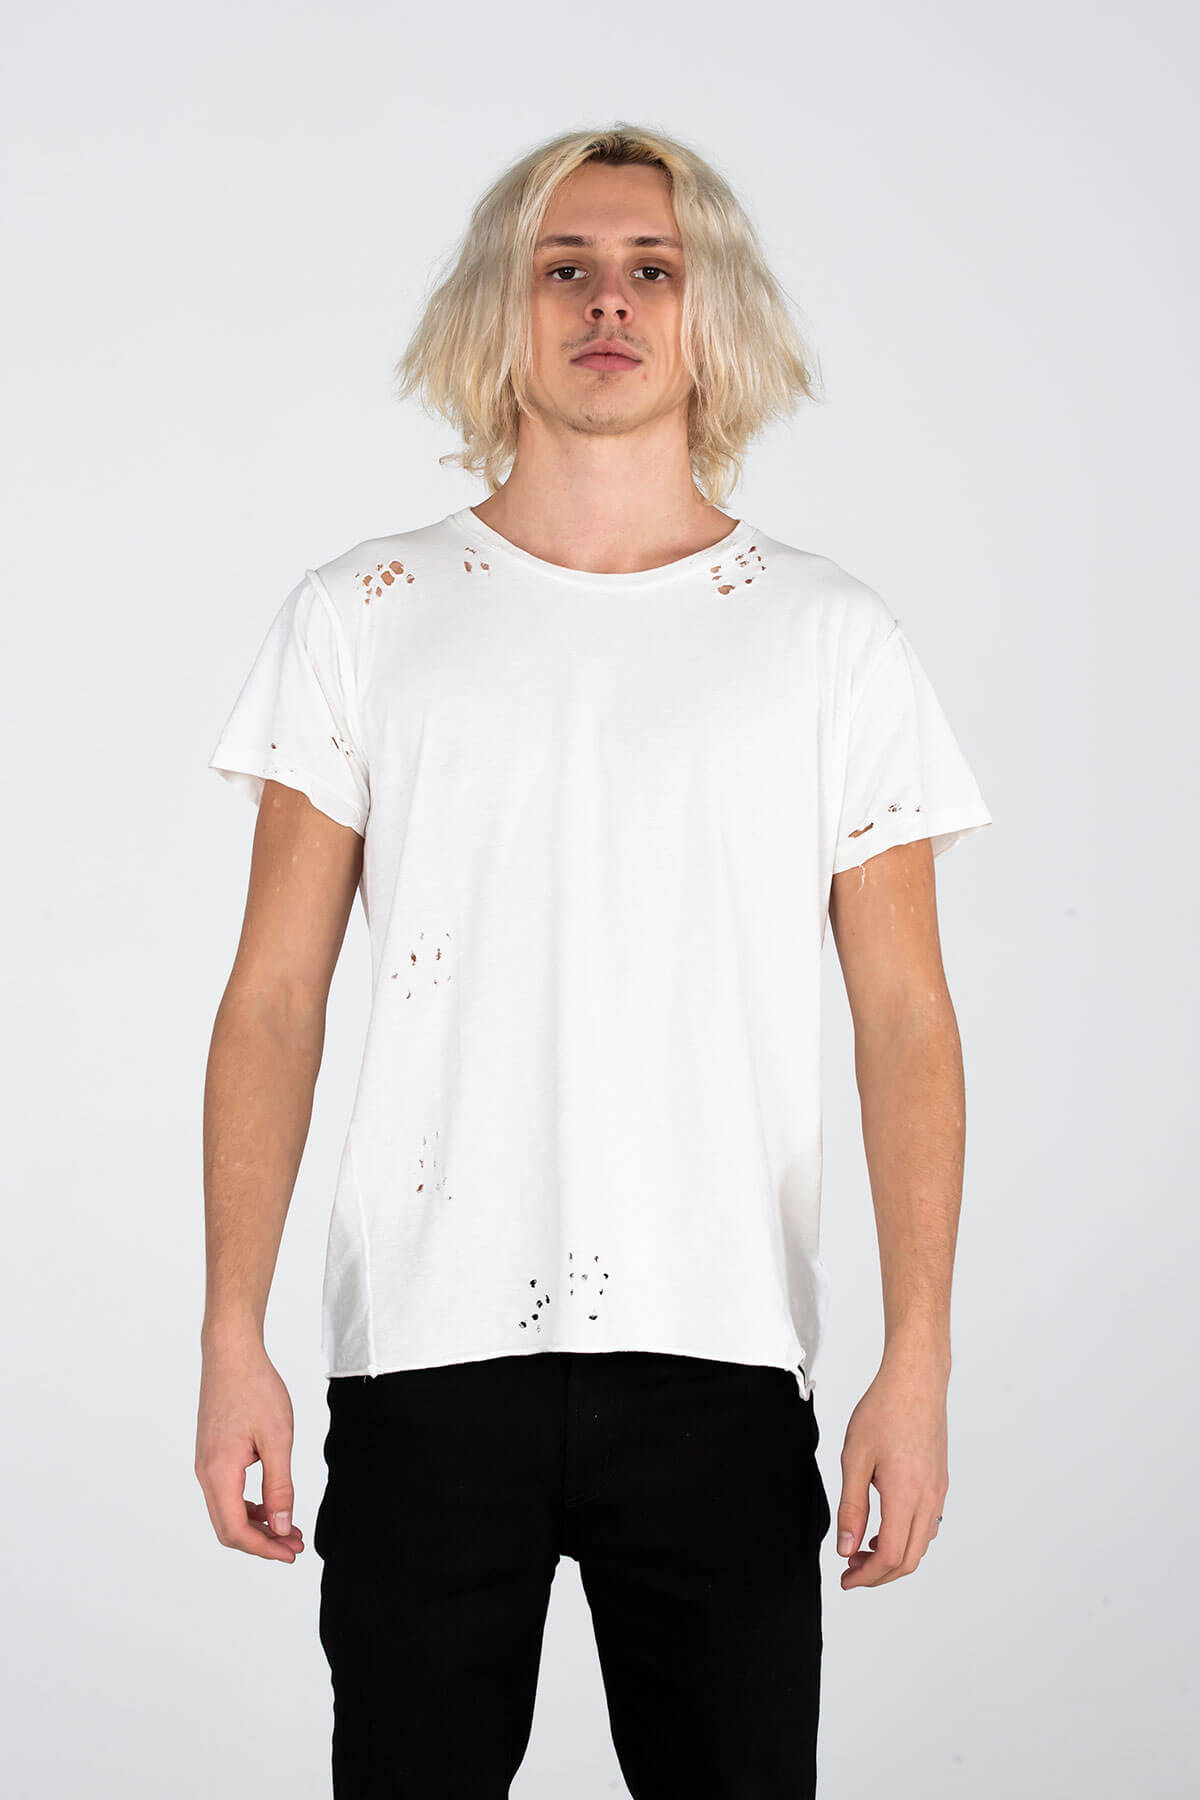 MJB VINTAGE T SHIRT – HAND DISTRESSED - TOP - MJB